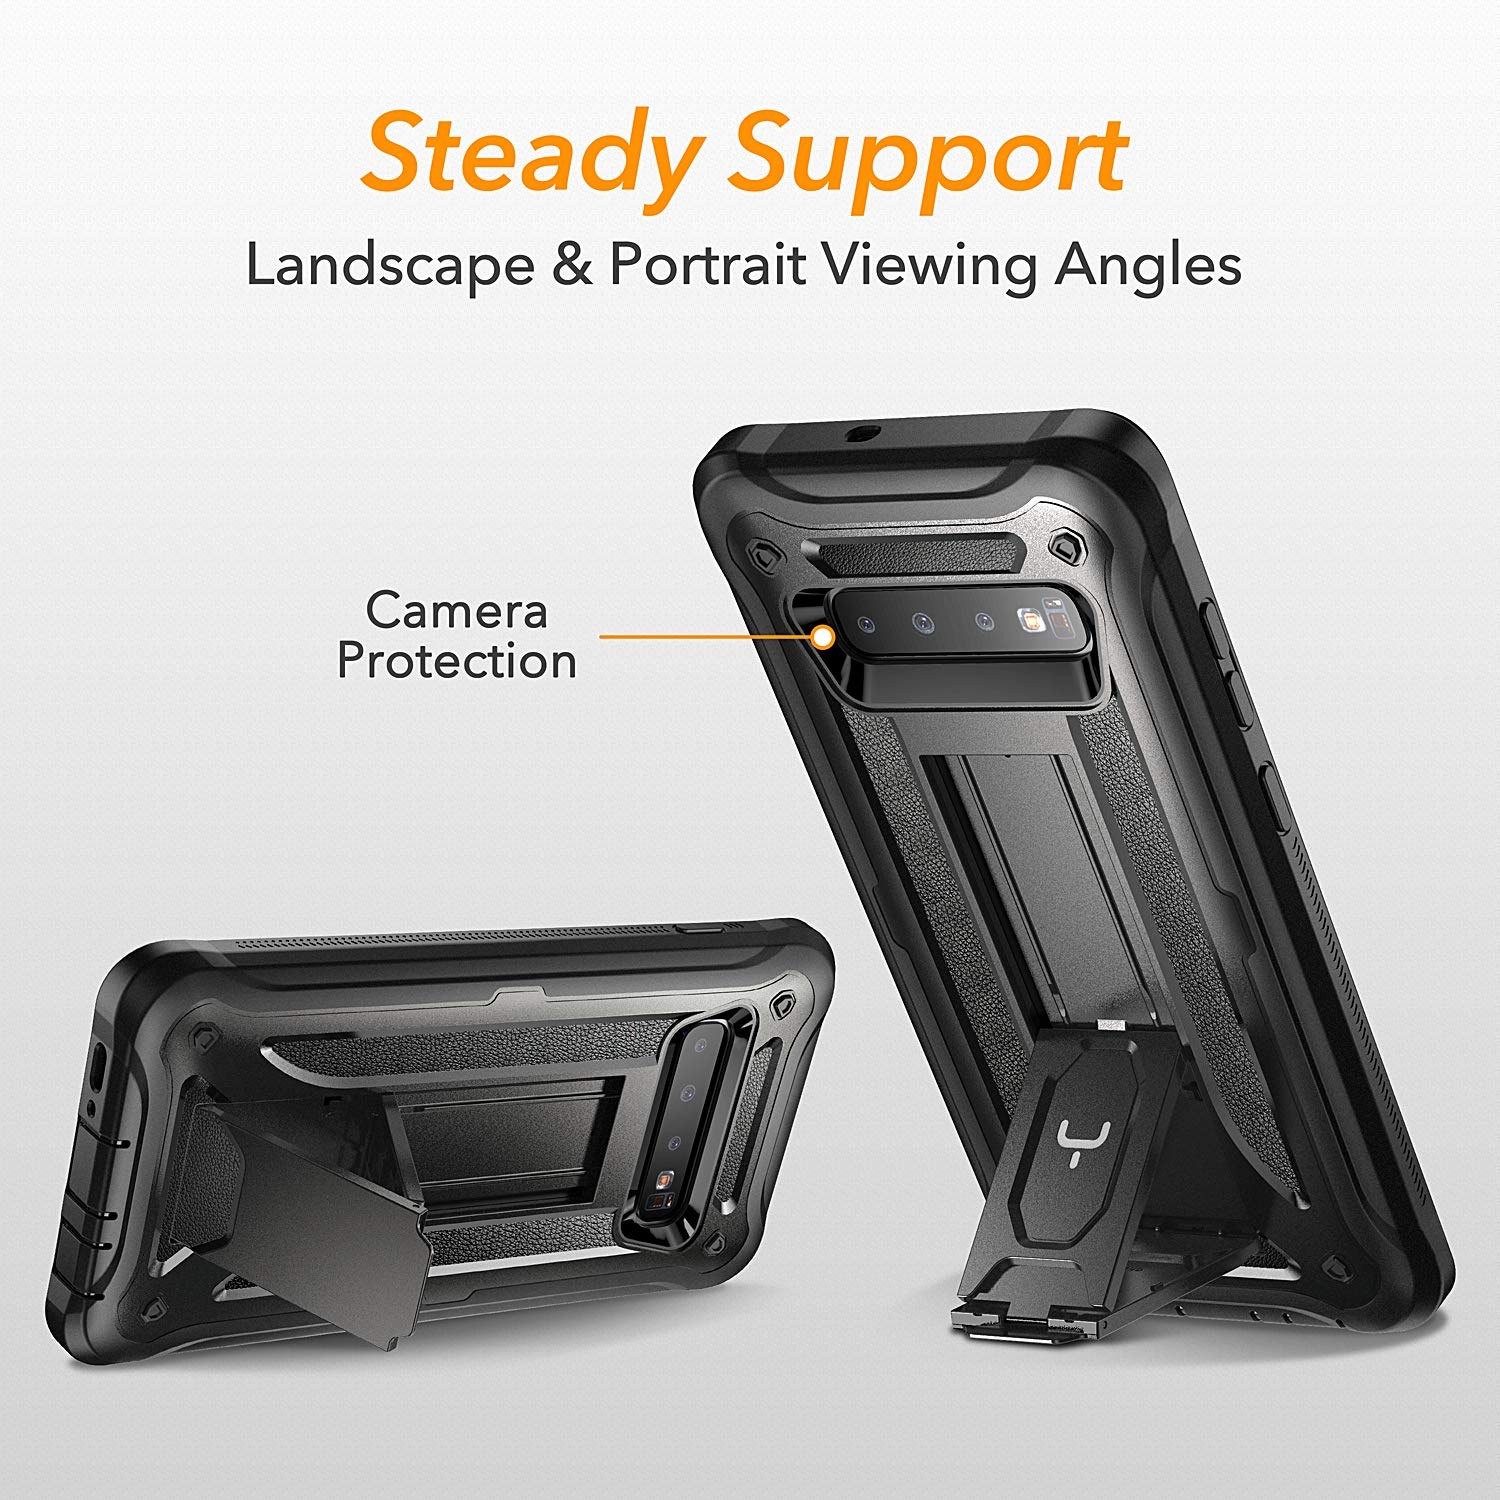 Heavy Duty Protection Case Kickstand with Built-in Screen